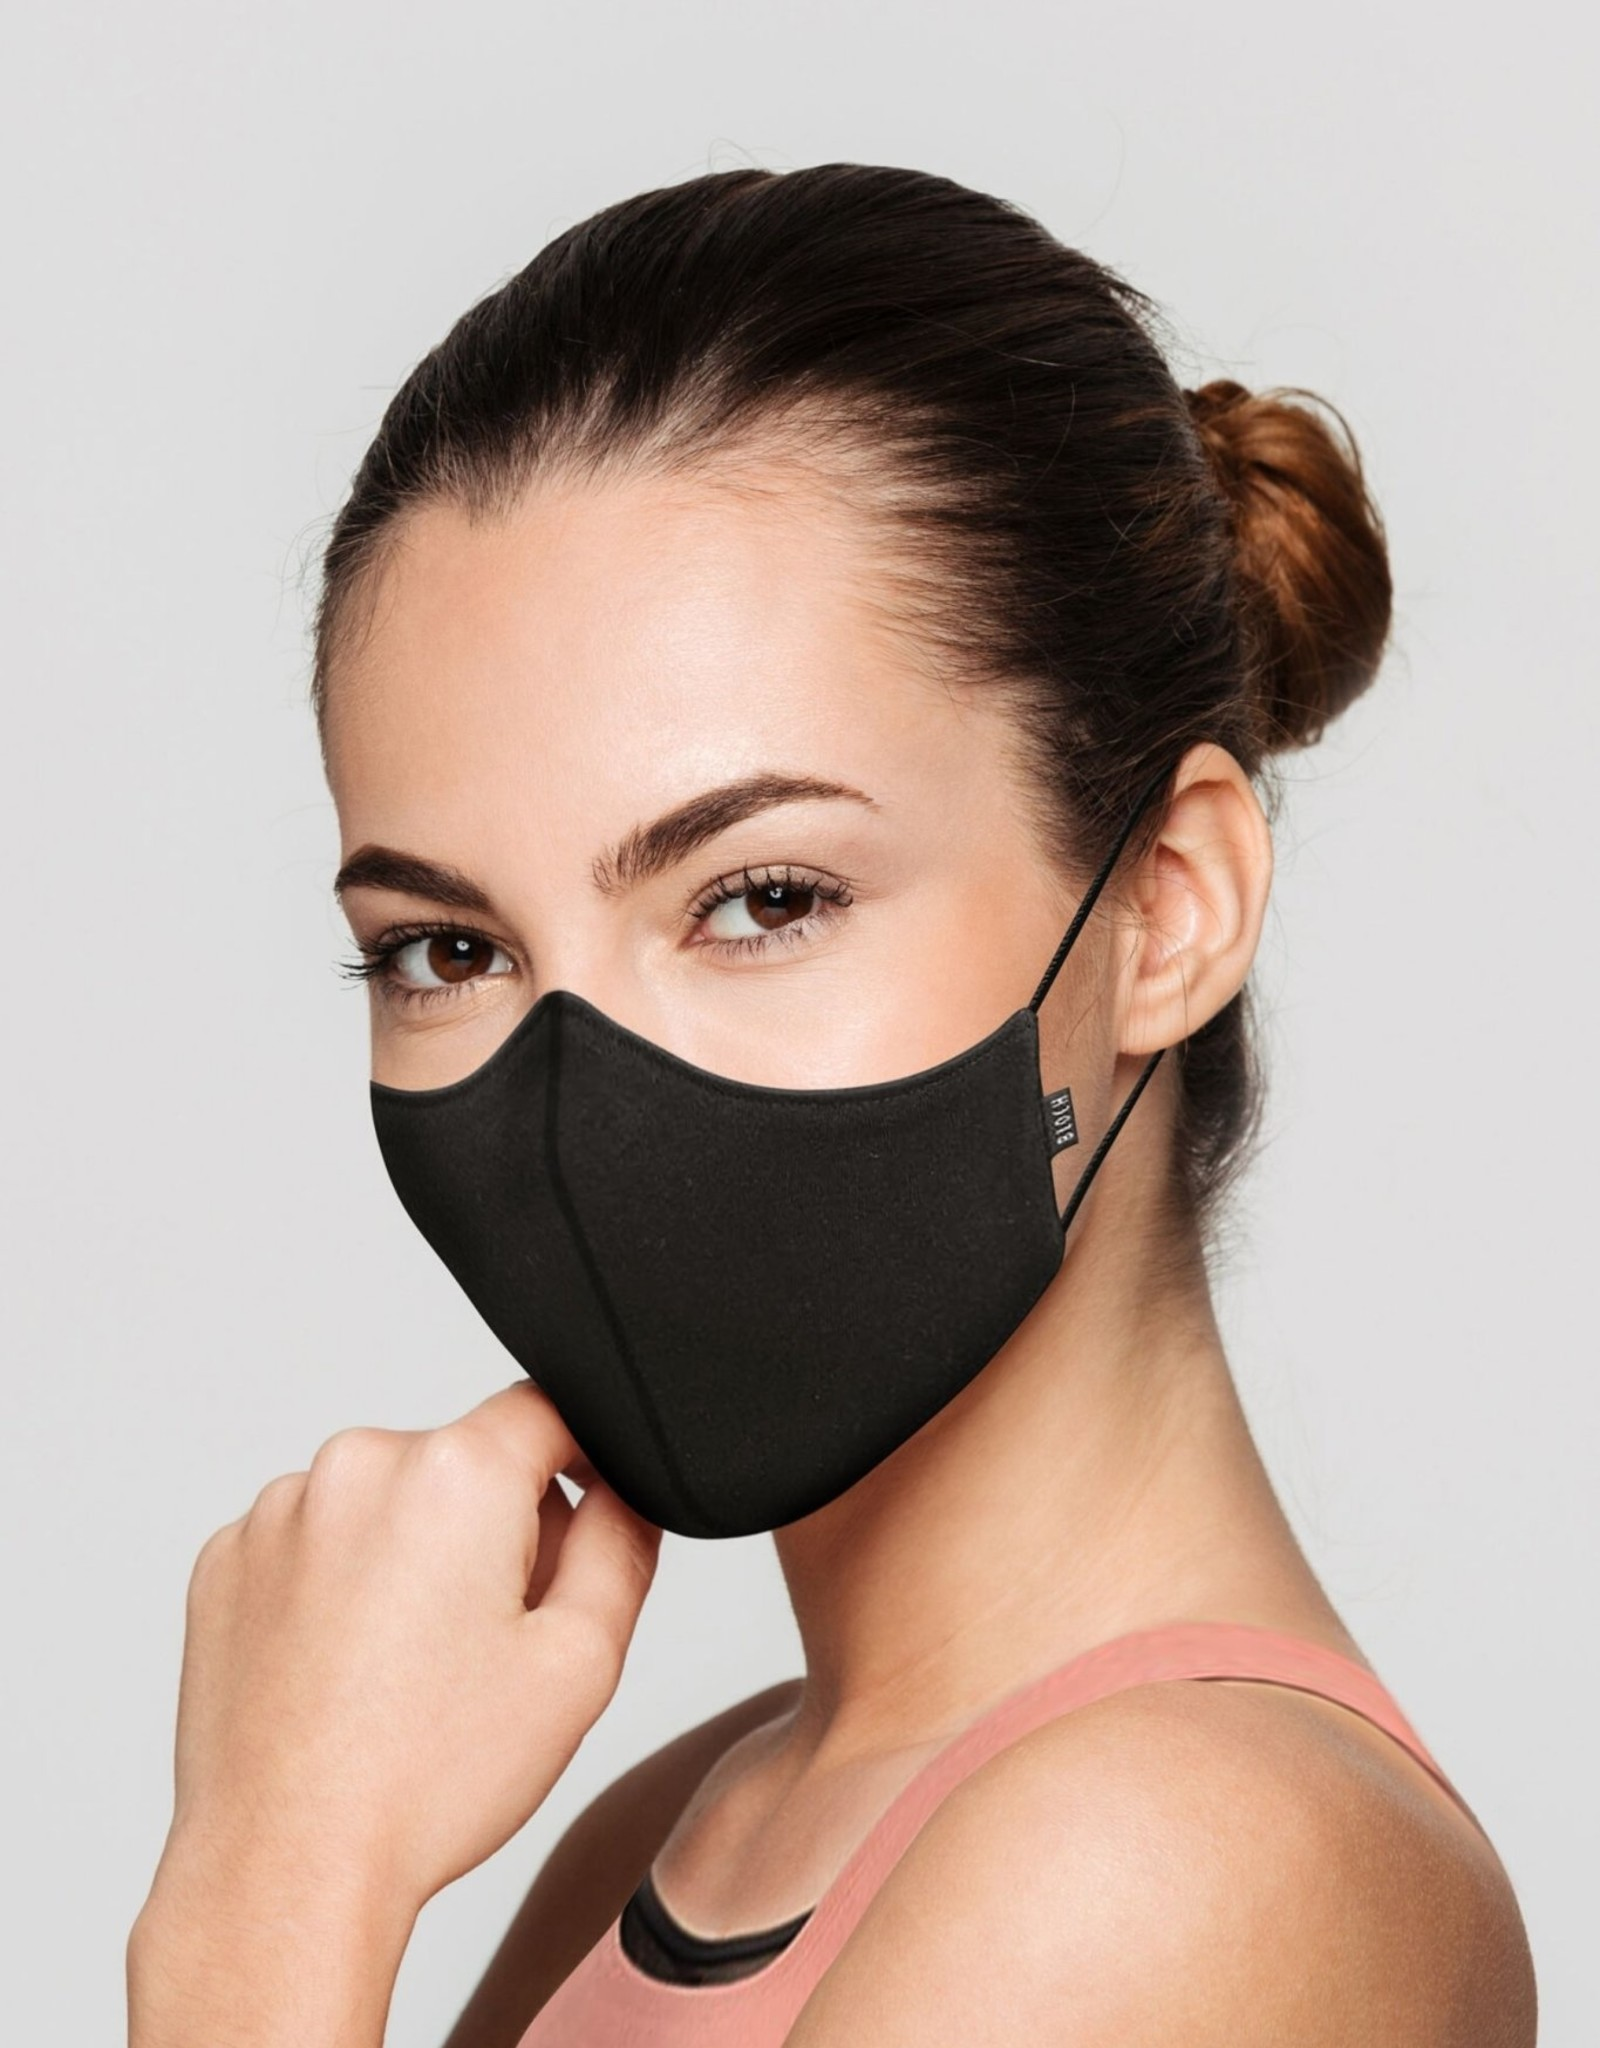 Bloch A001AP B-Safe Adult Face Mask 3 Pack